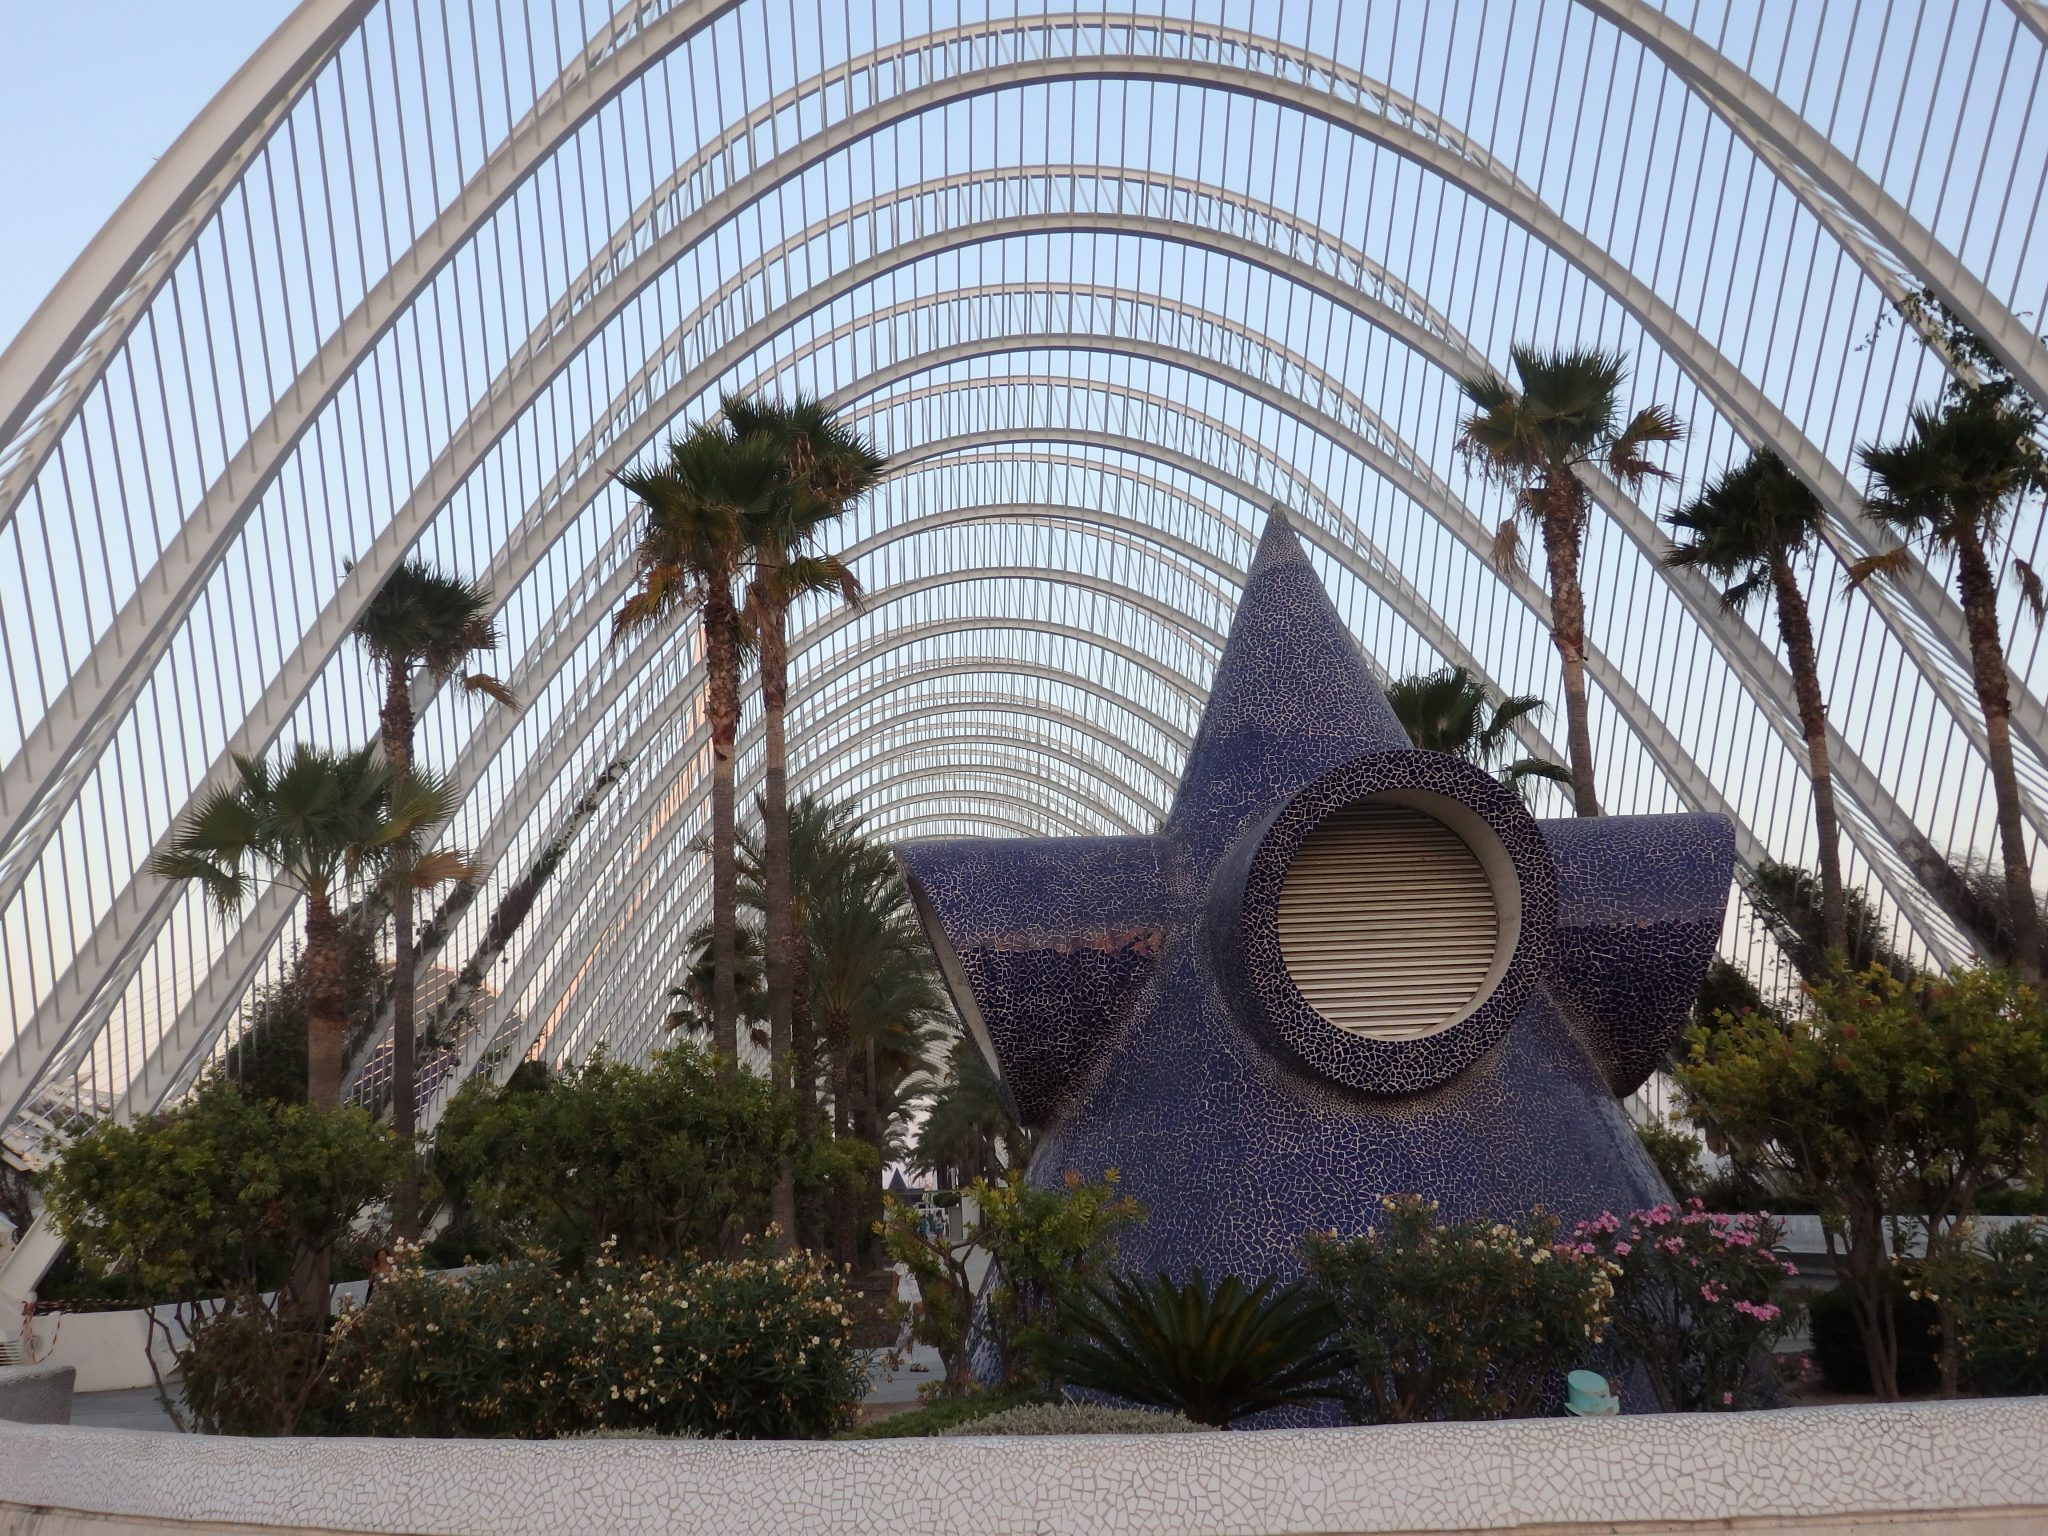 one end of the Umbracle at the City of Arts and Sciences in Valencia, Spain